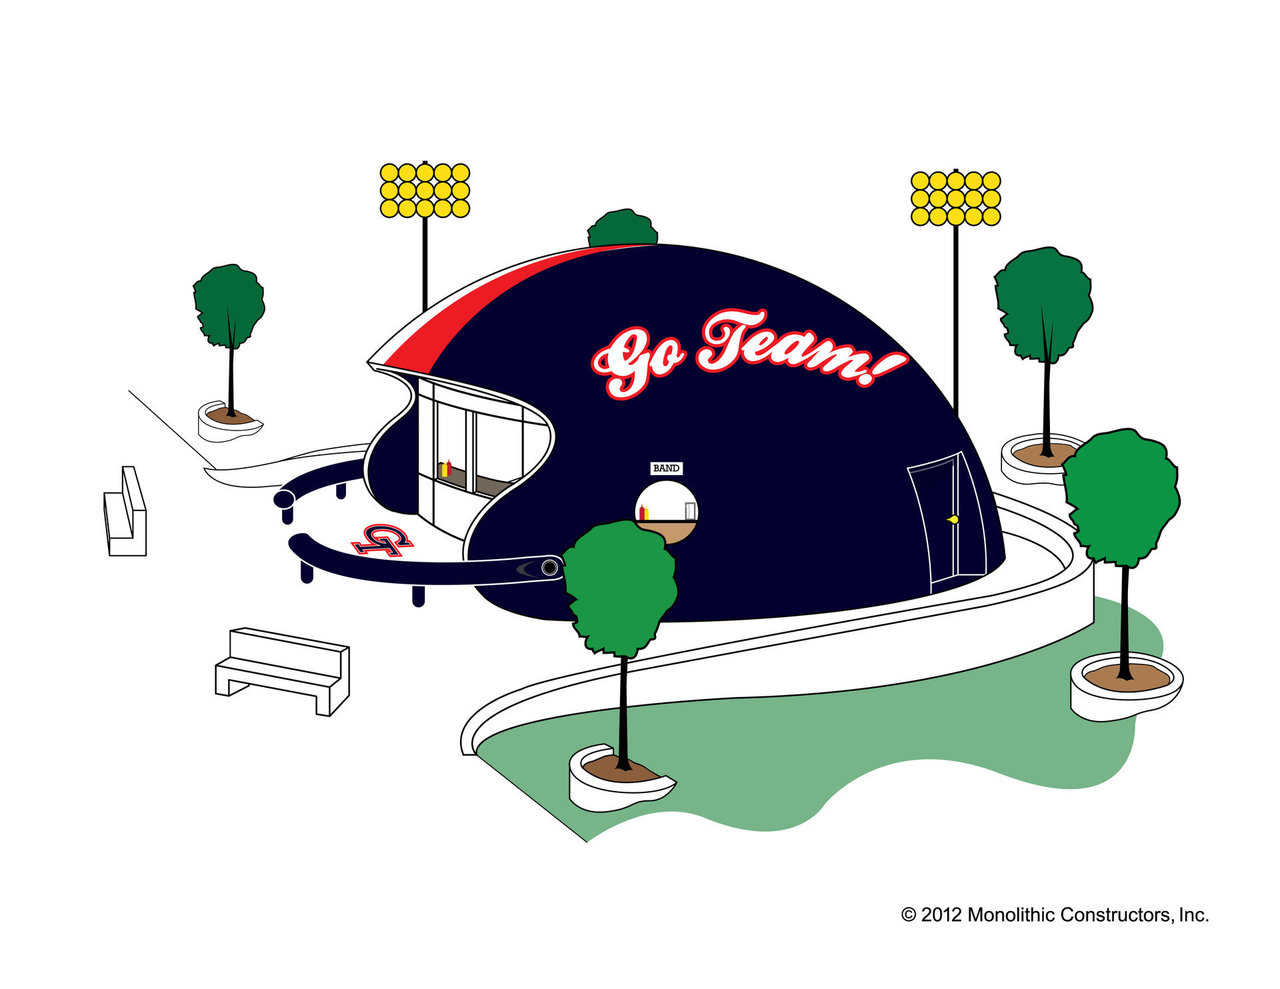 Pump up team pride and spirit with a football helmet-shaped concession dome! These cheerful domes will add even more excitement to games, offer shelter from storms and reduce maintenance cost.